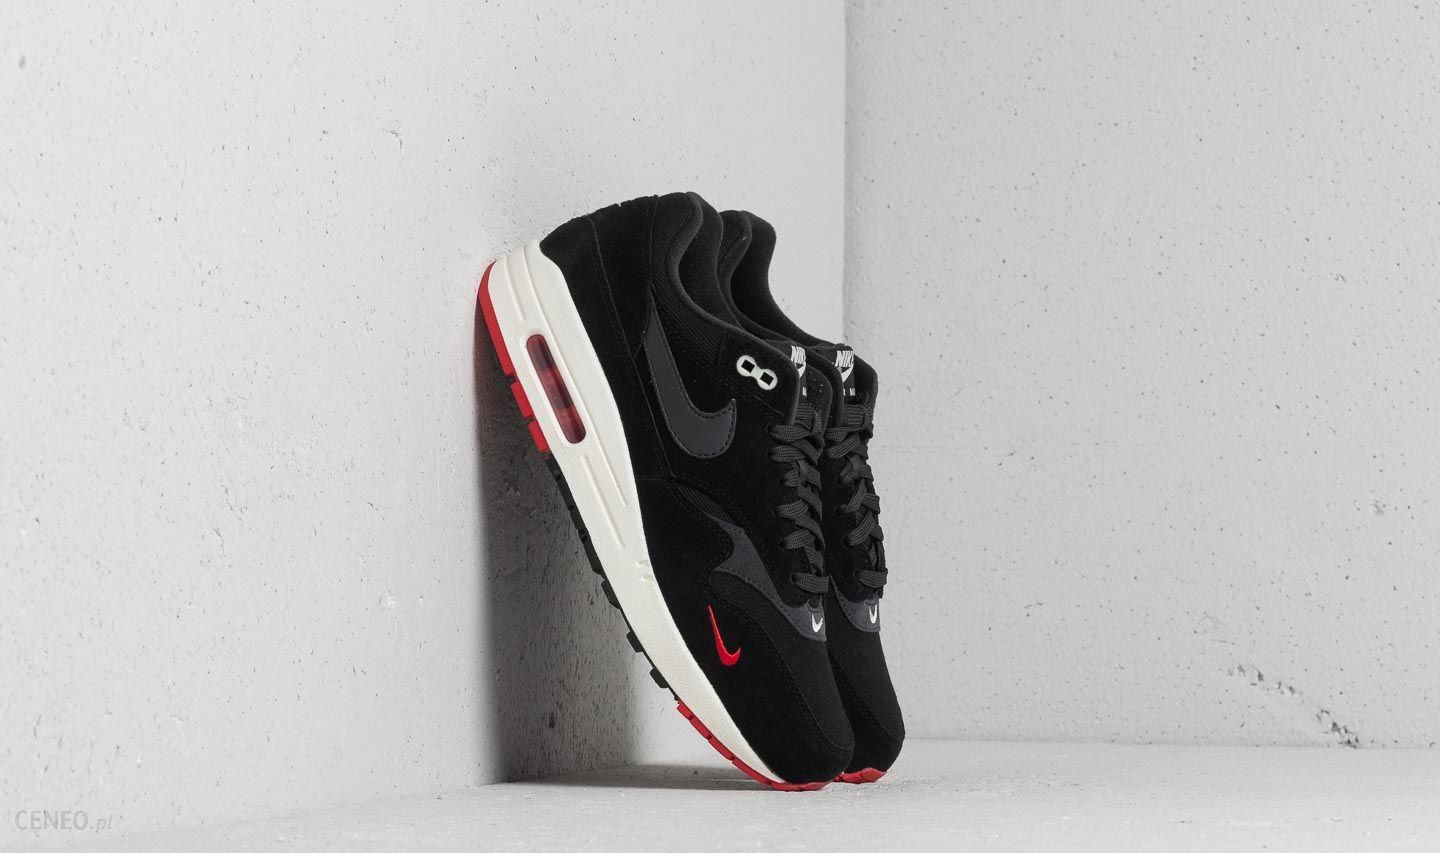 Nike Air Max 90 Essential Dark GreyUniversity Red | Sole